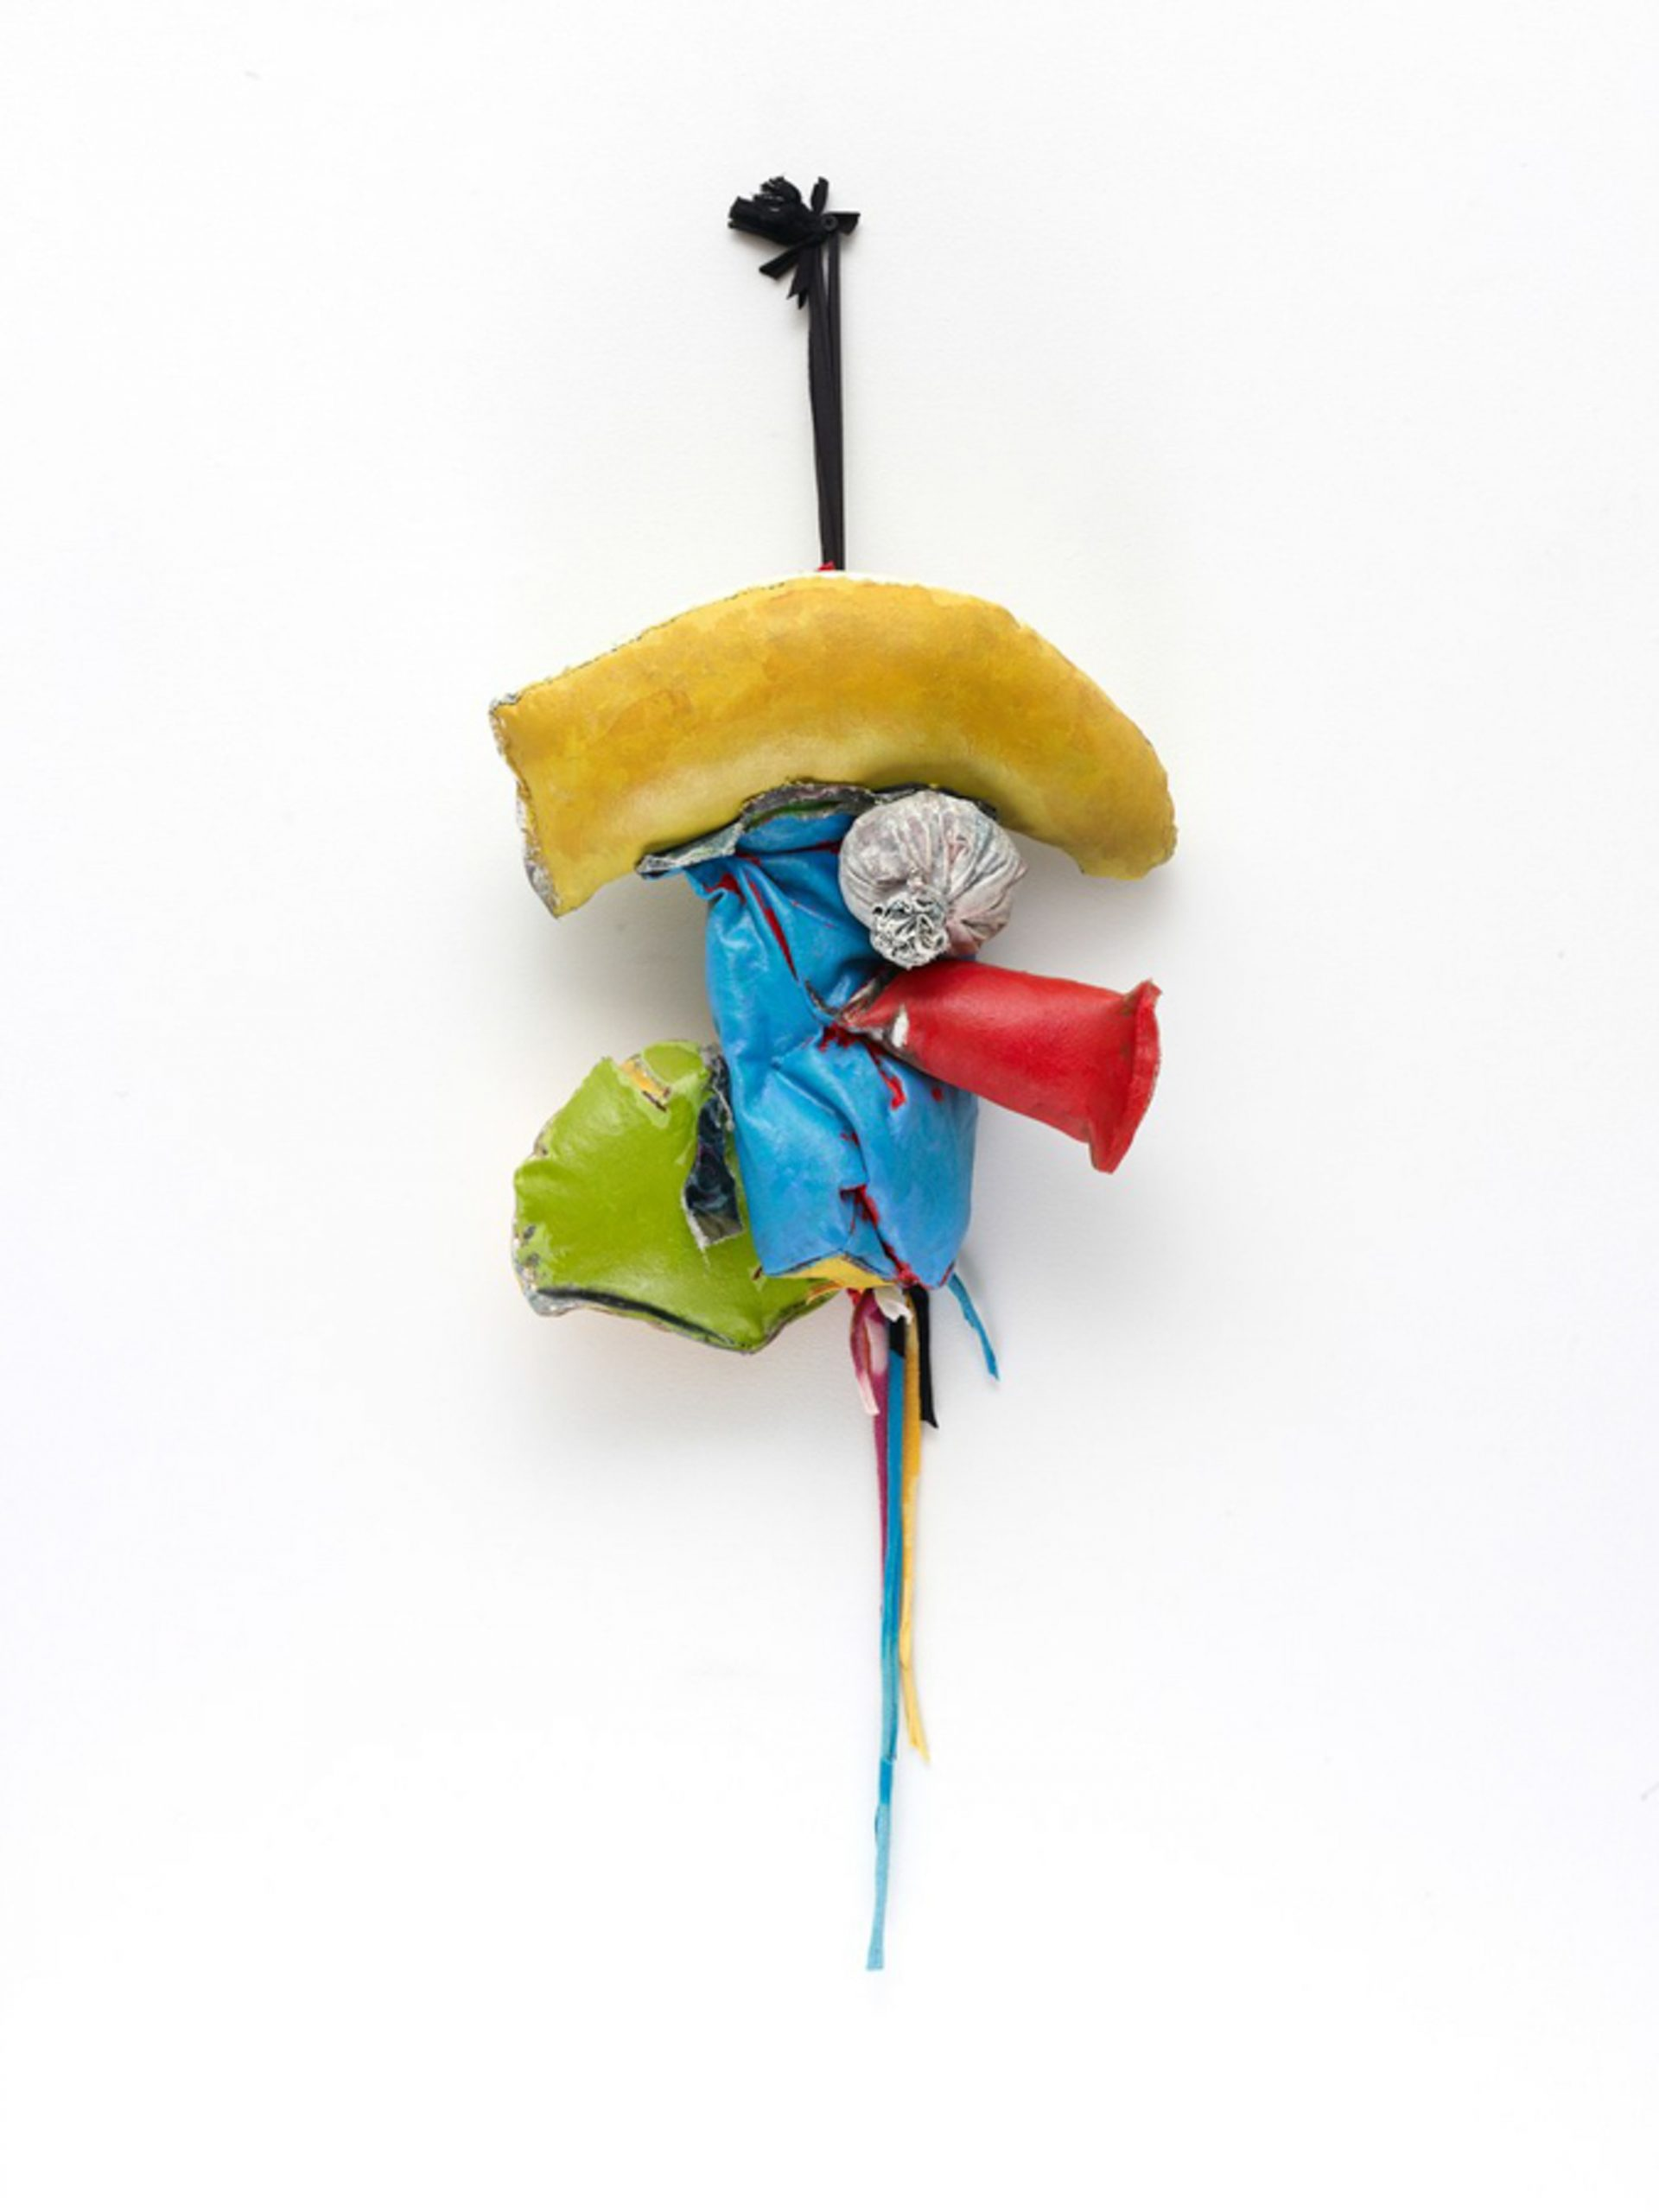 John Outterbridge, Rag and Bag Idiom III (2012), mixed media, 32 x 14 x 7 1/2 inches. Image courtesy Tilton Gallery, New York.